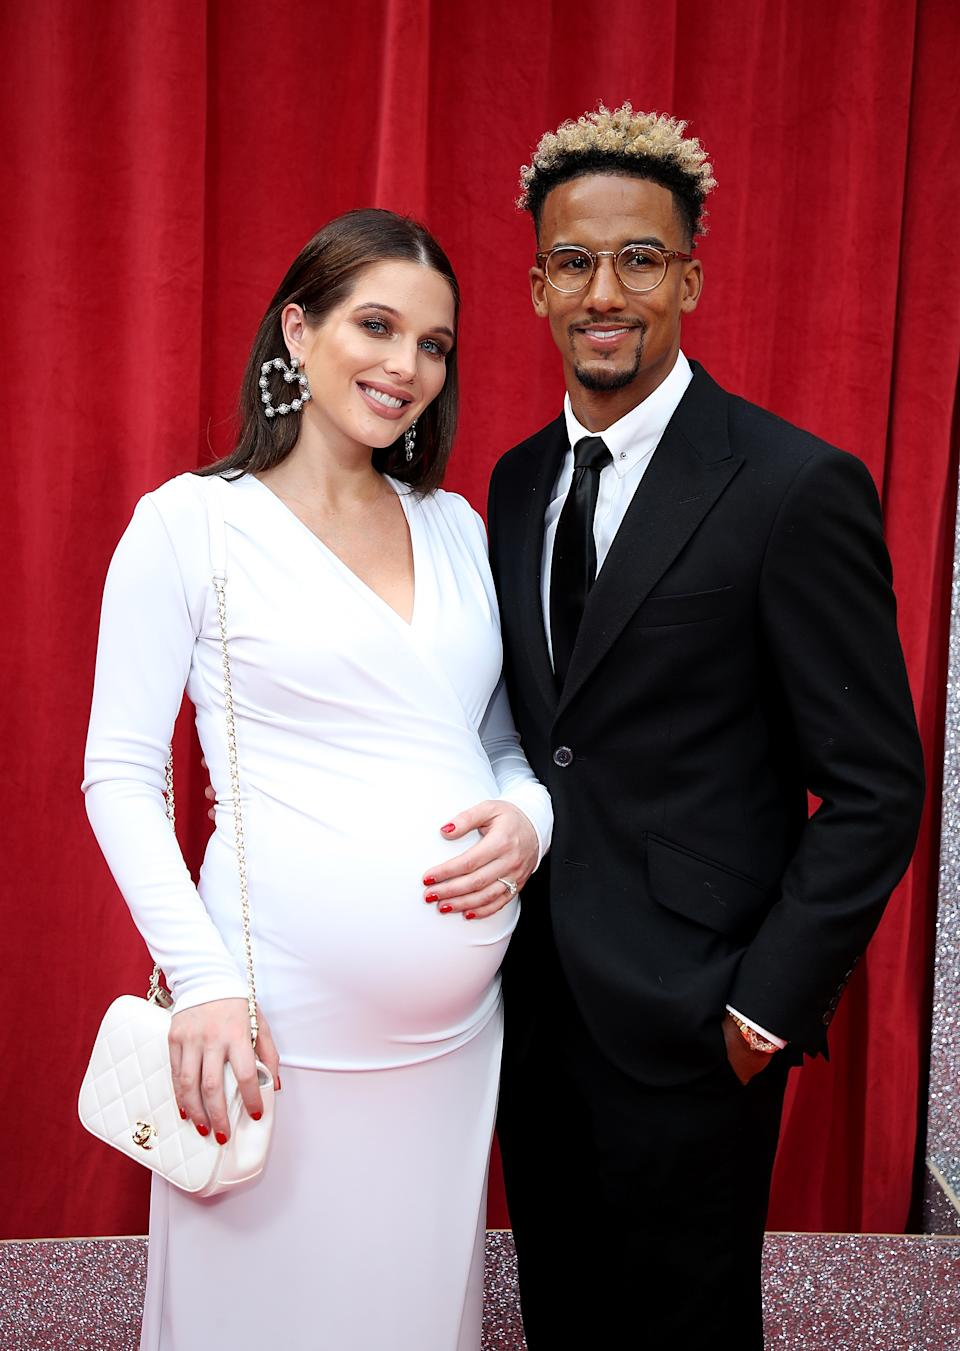 LONDON, ENGLAND - JUNE 02:  Helen Flanagan and Scott Sinclair attend the British Soap Awards 2018 at Hackney Empire on June 2, 2018 in London, England.  (Photo by Mike Marsland/Mike Marsland/WireImage)